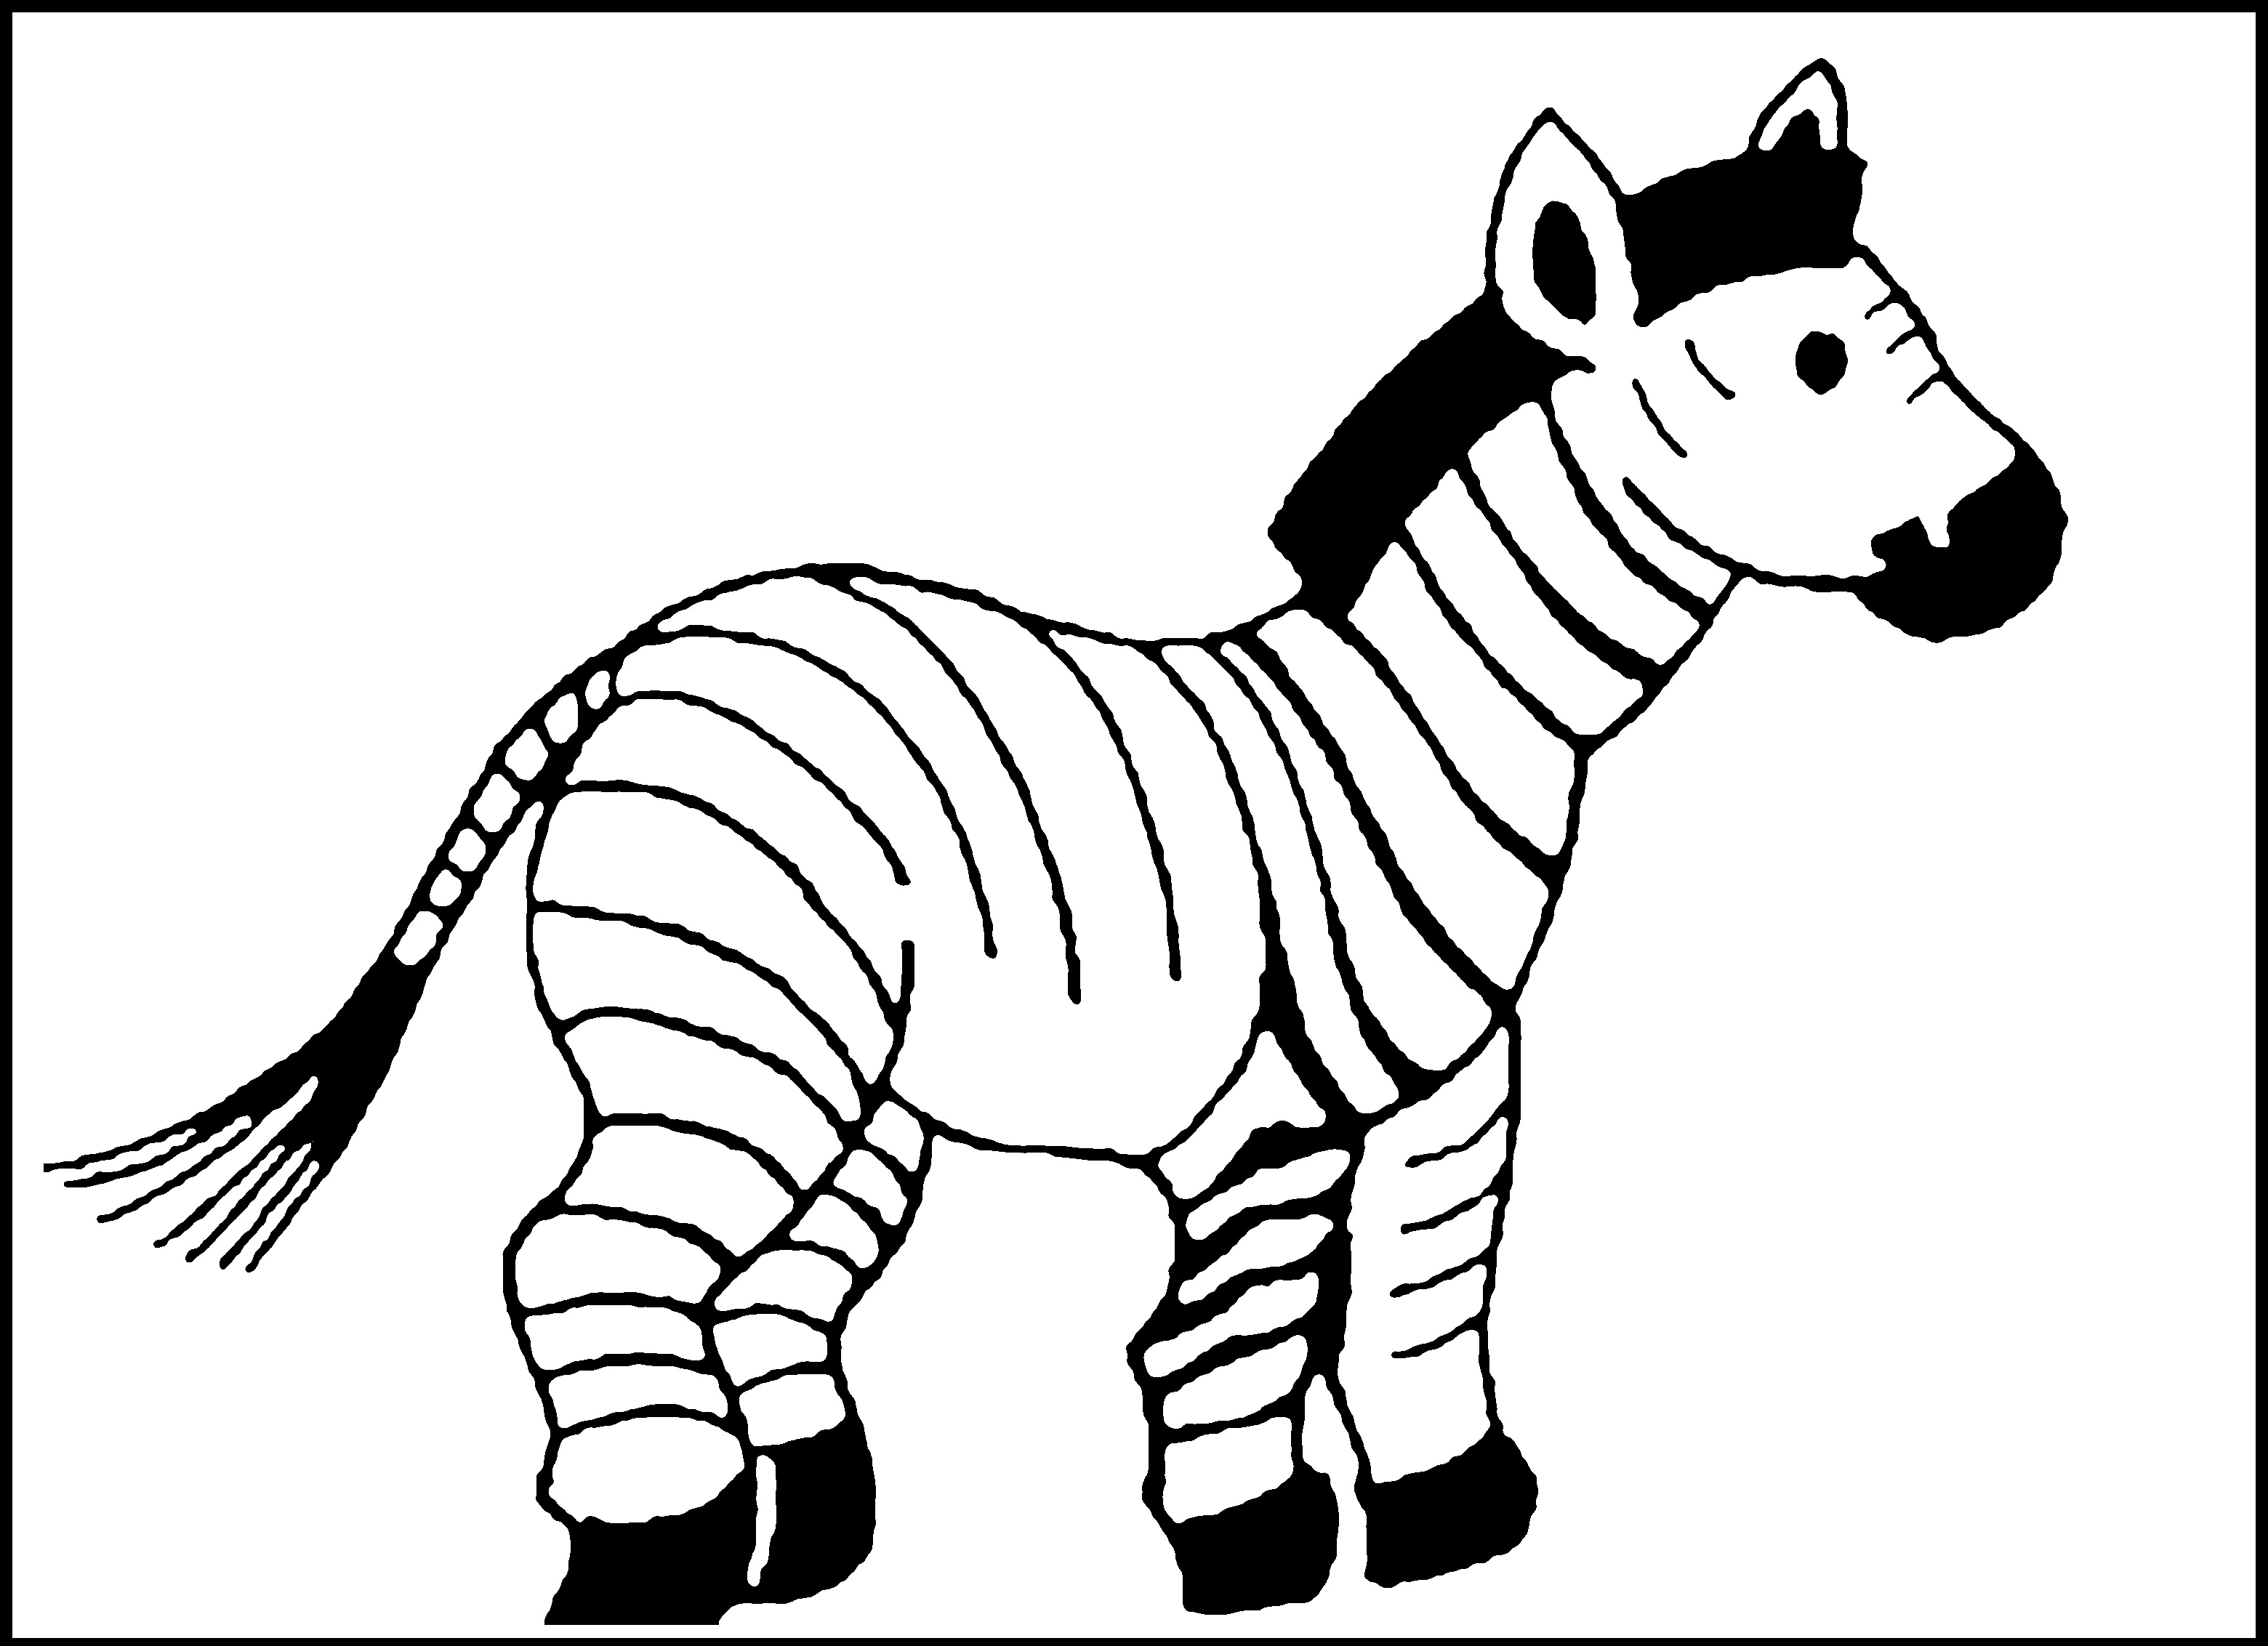 Free Printable Zebra Coloring Pages For Kids | Animal Place